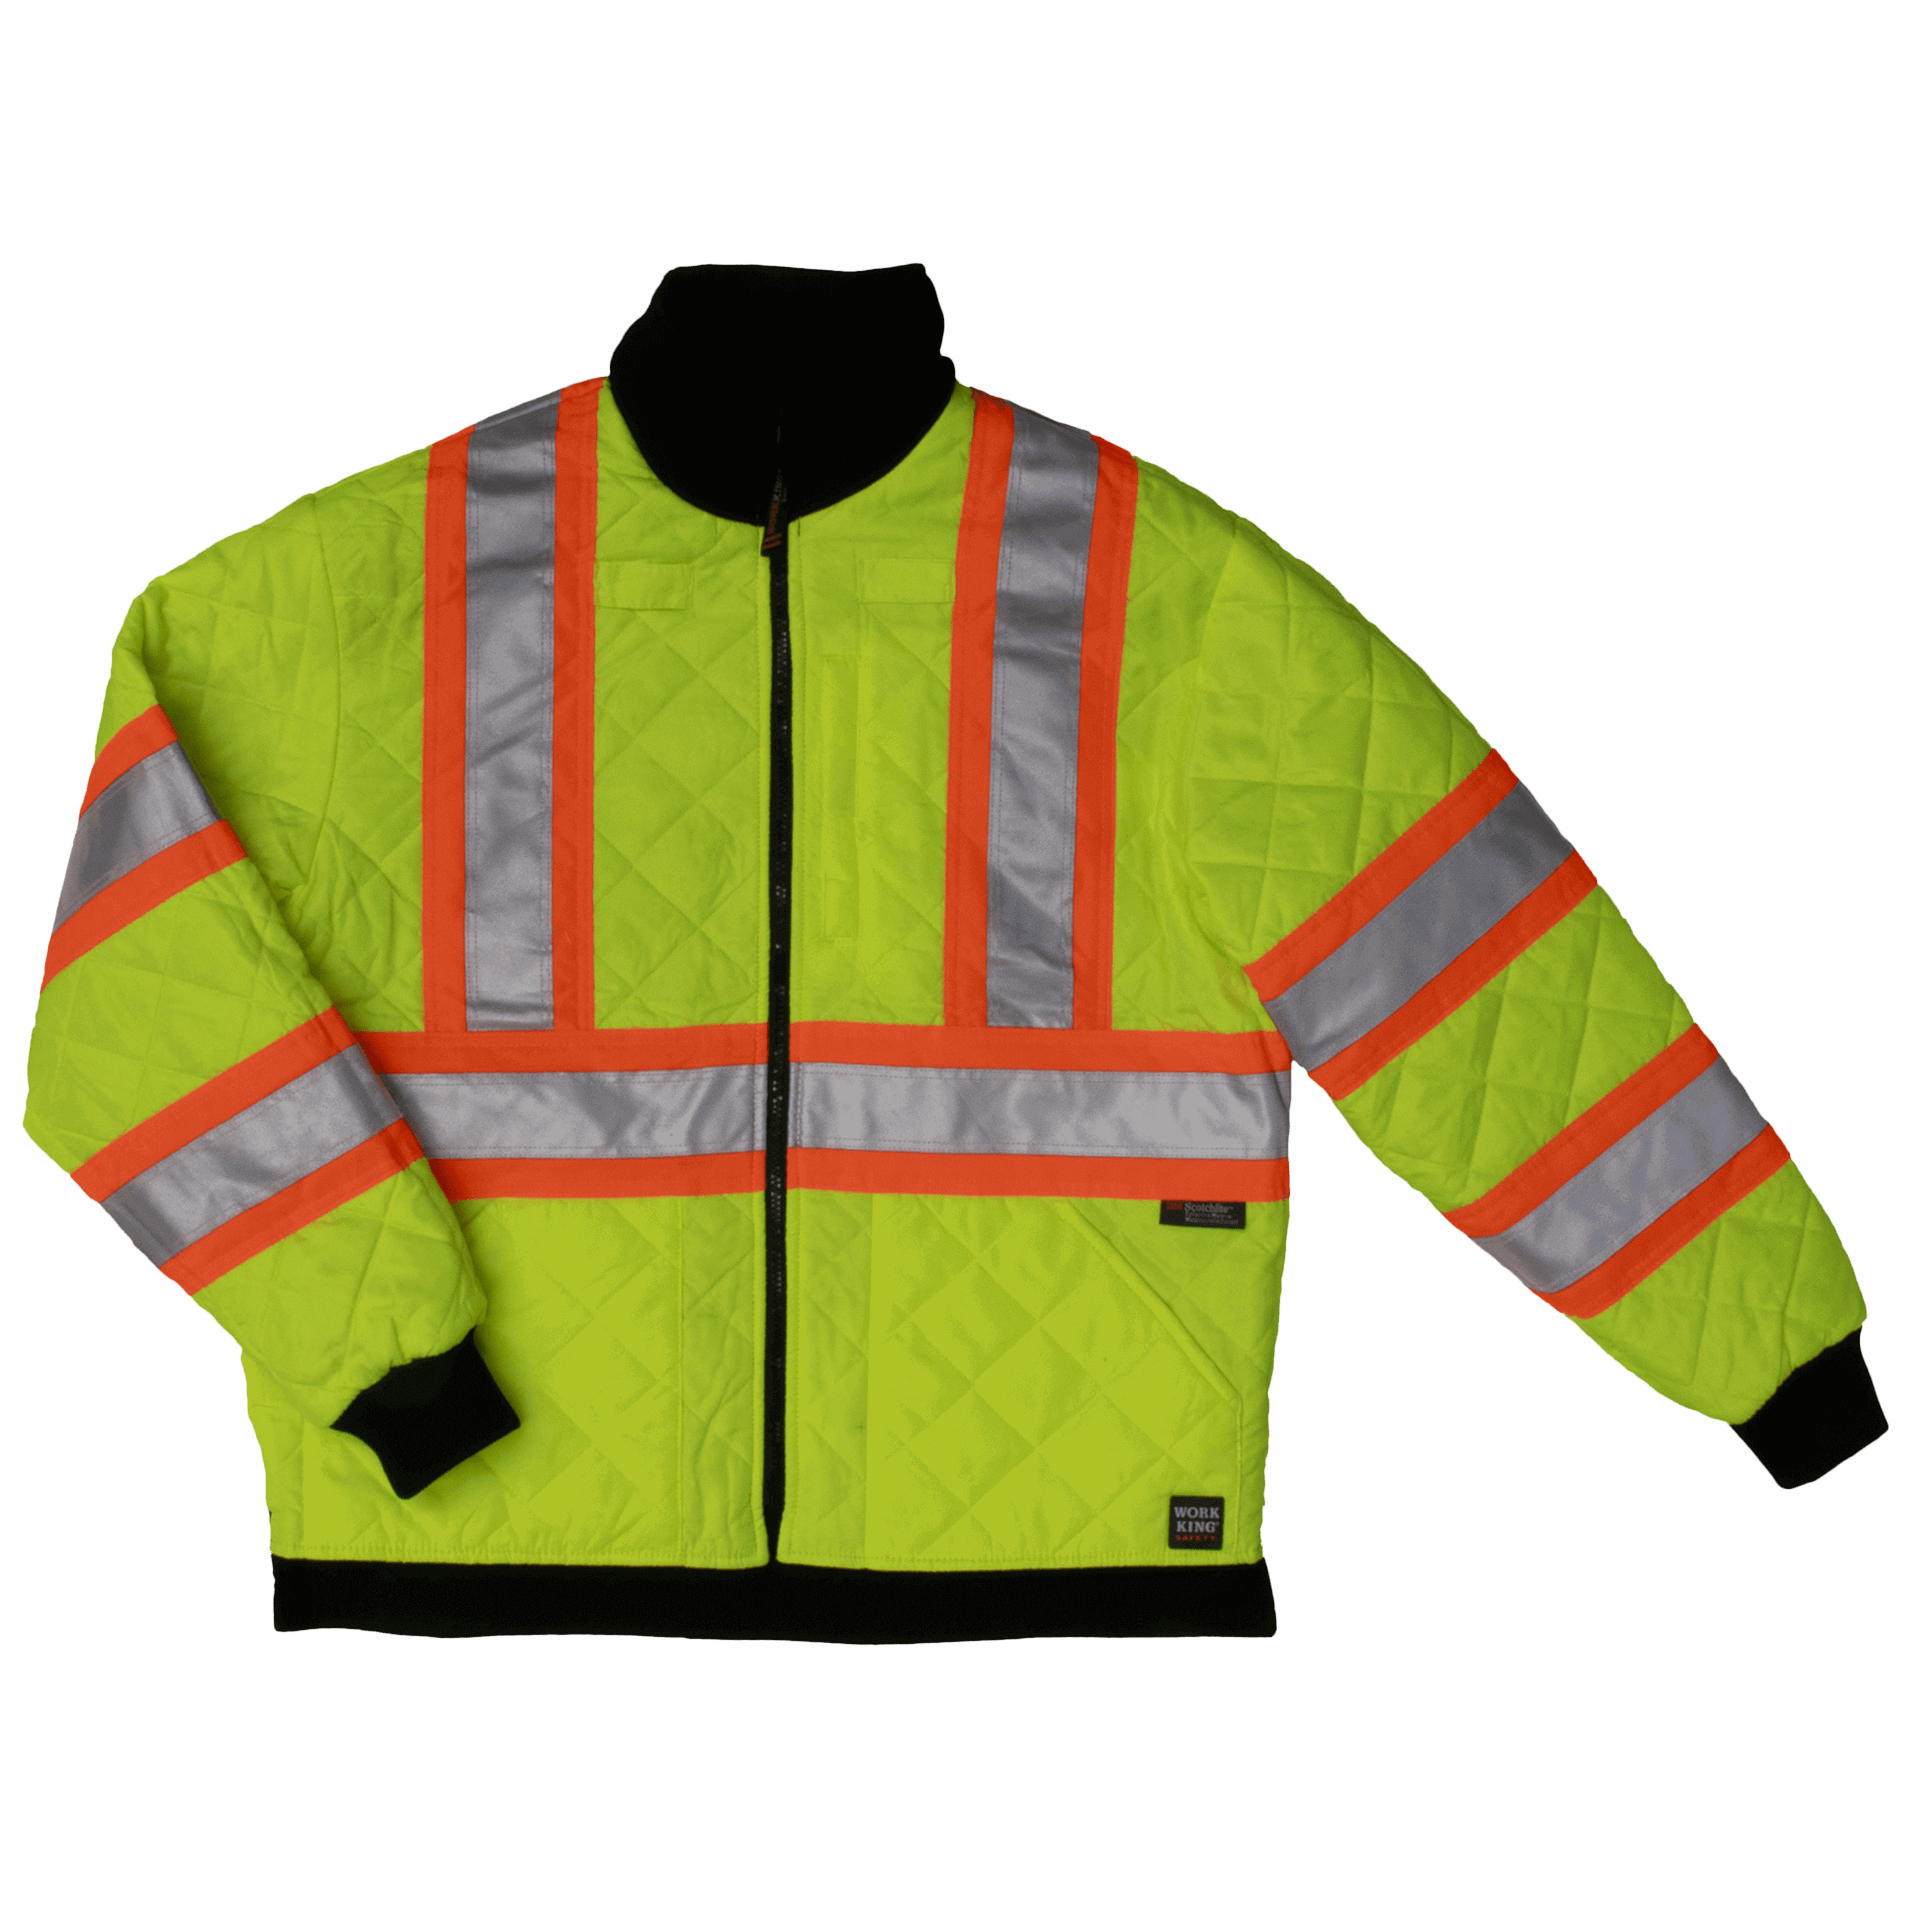 Work King Hi-Vis Duck/Safety Reversible Jacket - S241